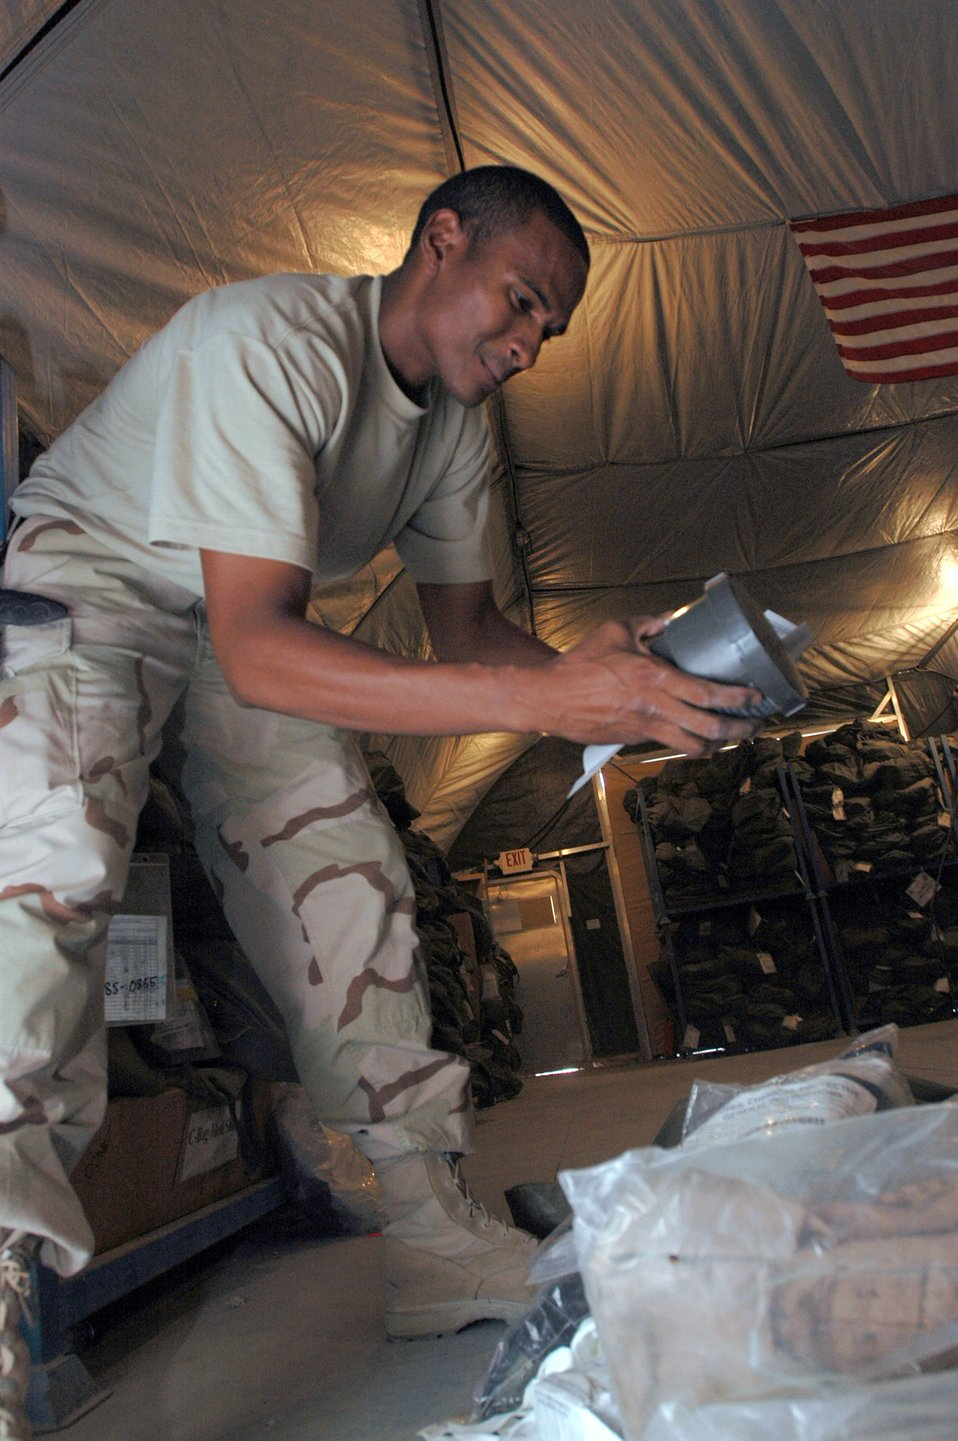 Expeditionary Theater Deployment Center equips transient Airmen